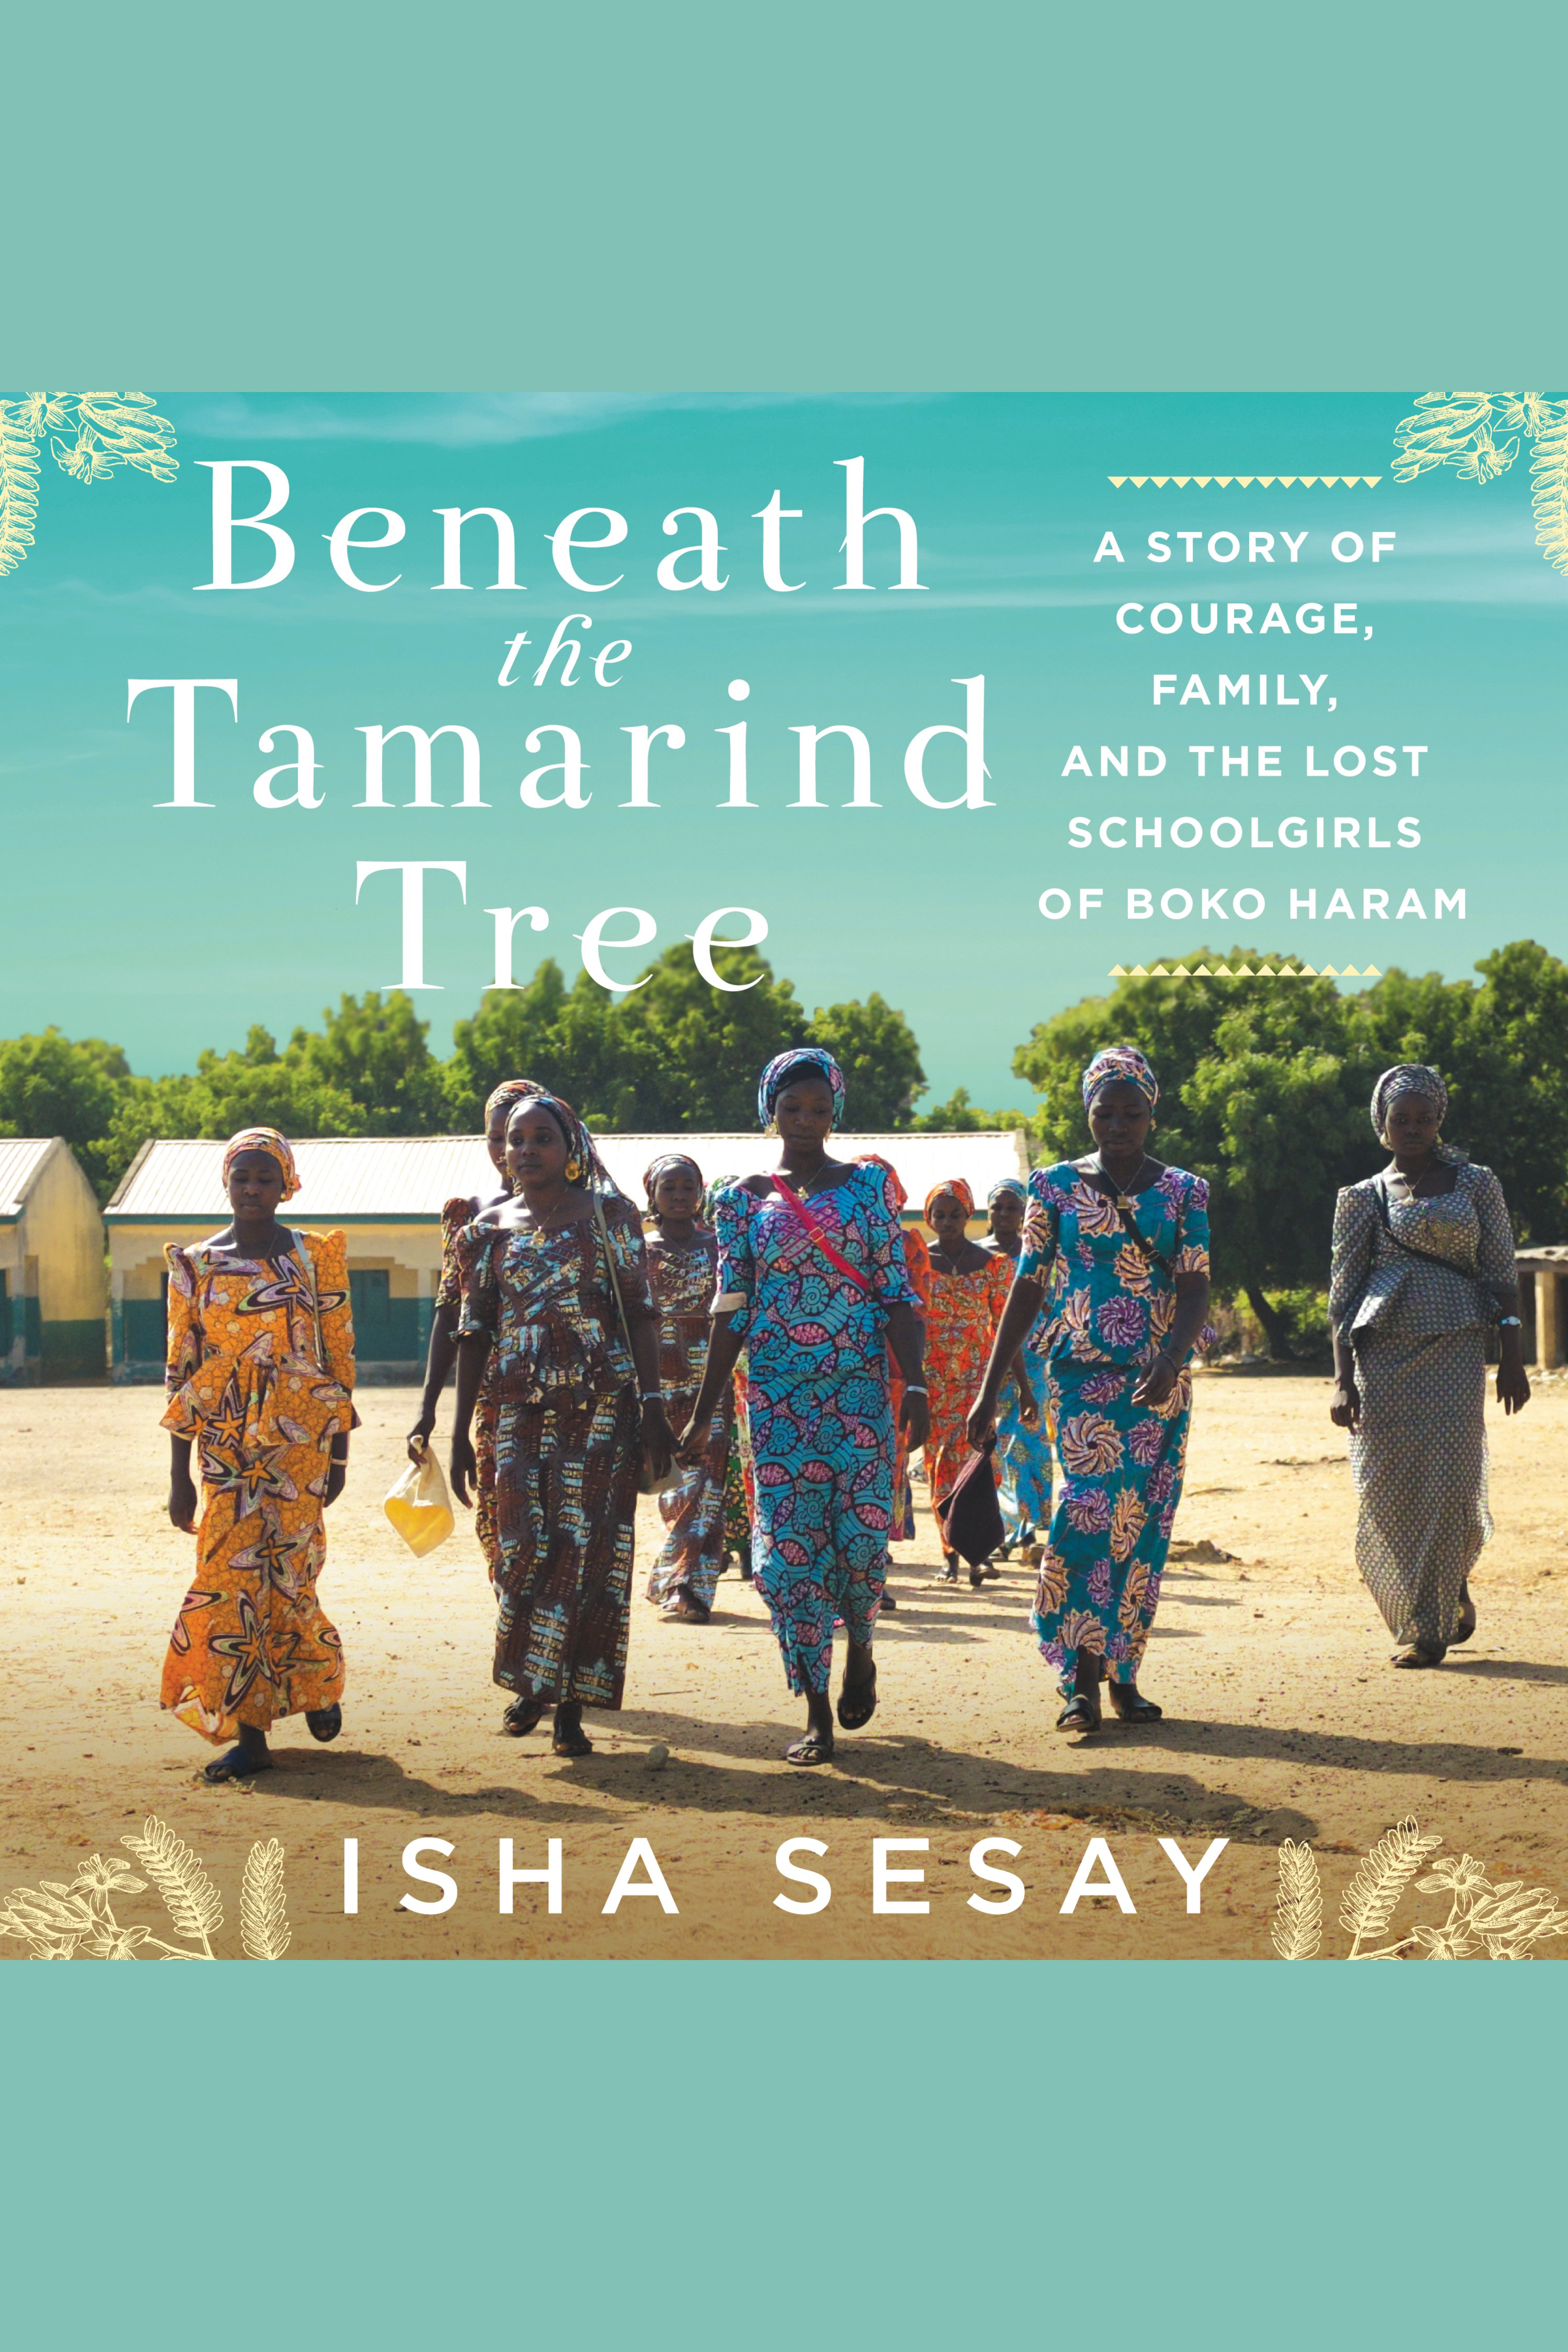 Cover Image of Beneath the Tamarind Tree